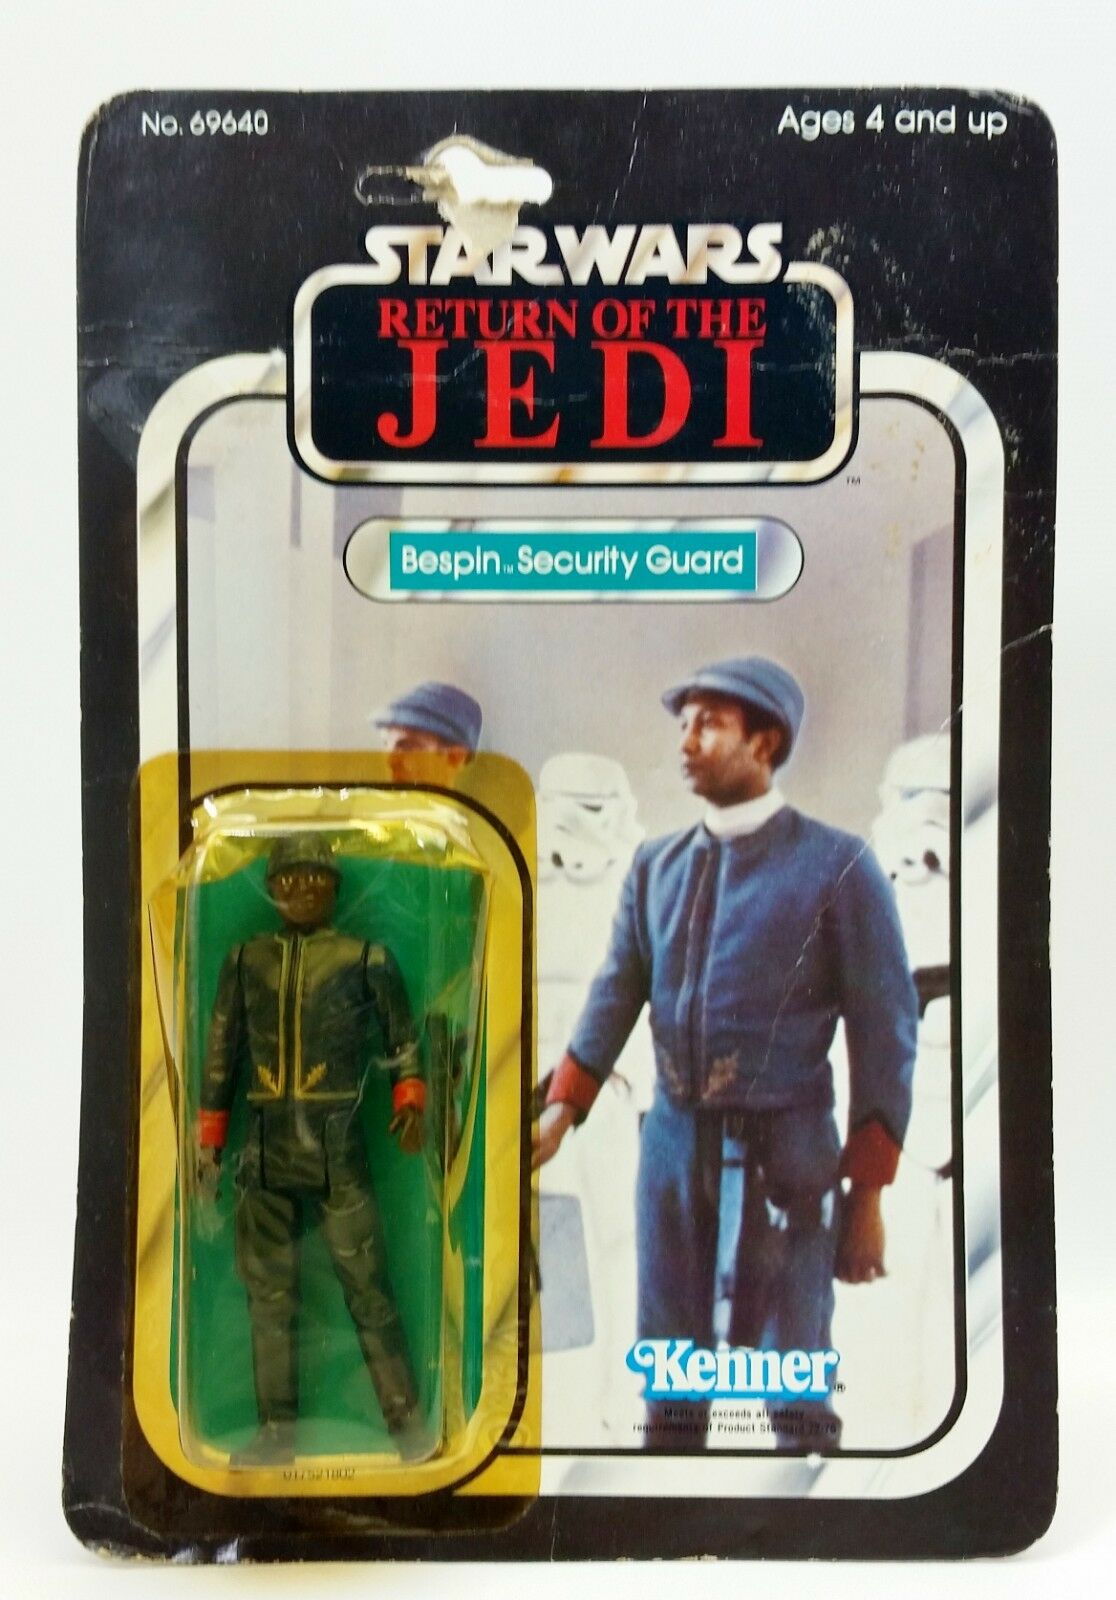 1983 Star Wars Return Of The Jedi Bespin Security Guard Action Figure No. 69640